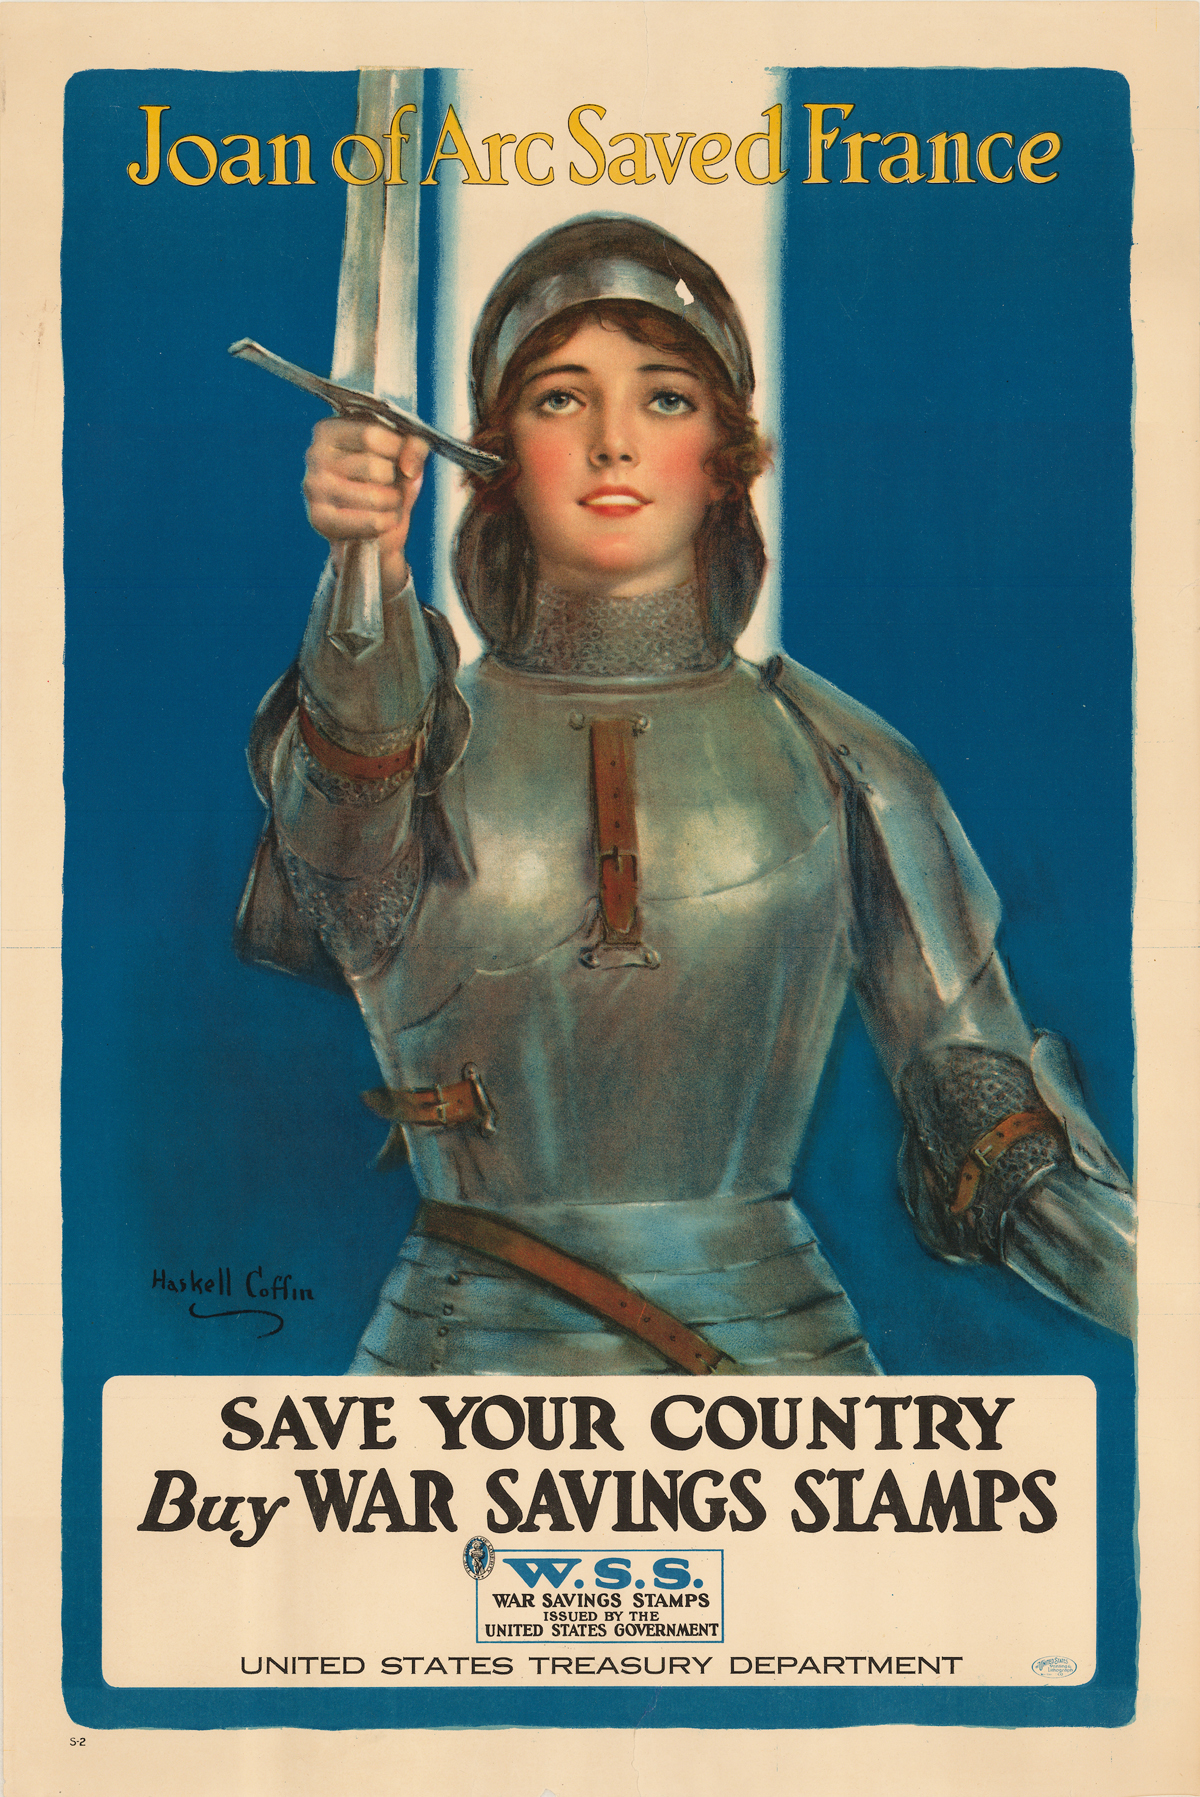 1918 poster appealing to Americans to buy war stamps